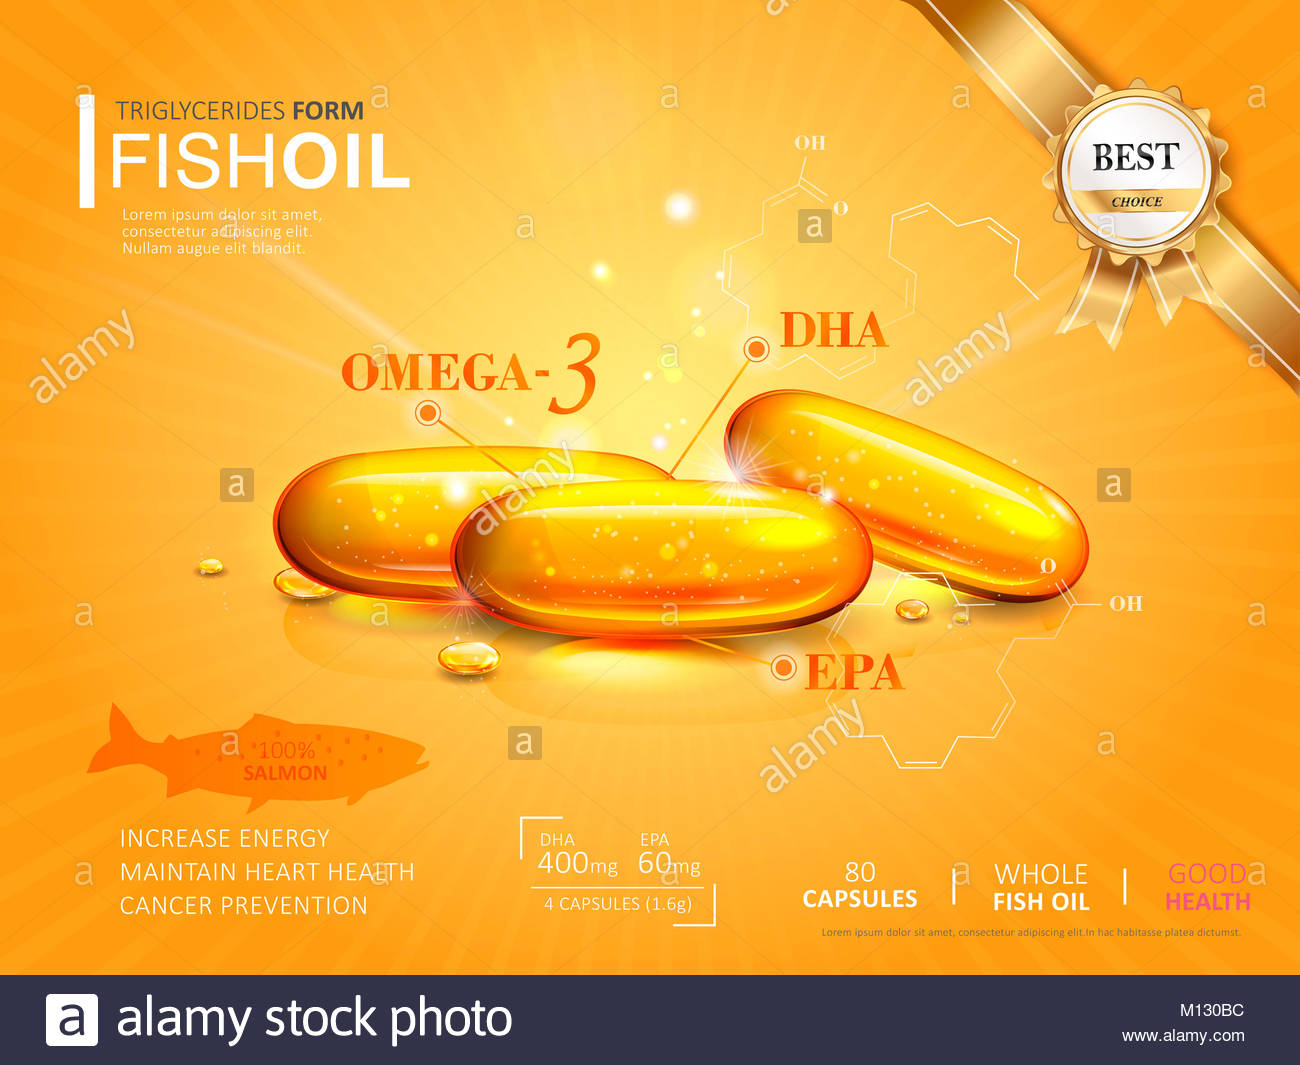 fish oil ads template omega 3 softgel isolated on chrome yellow background 3d illustration